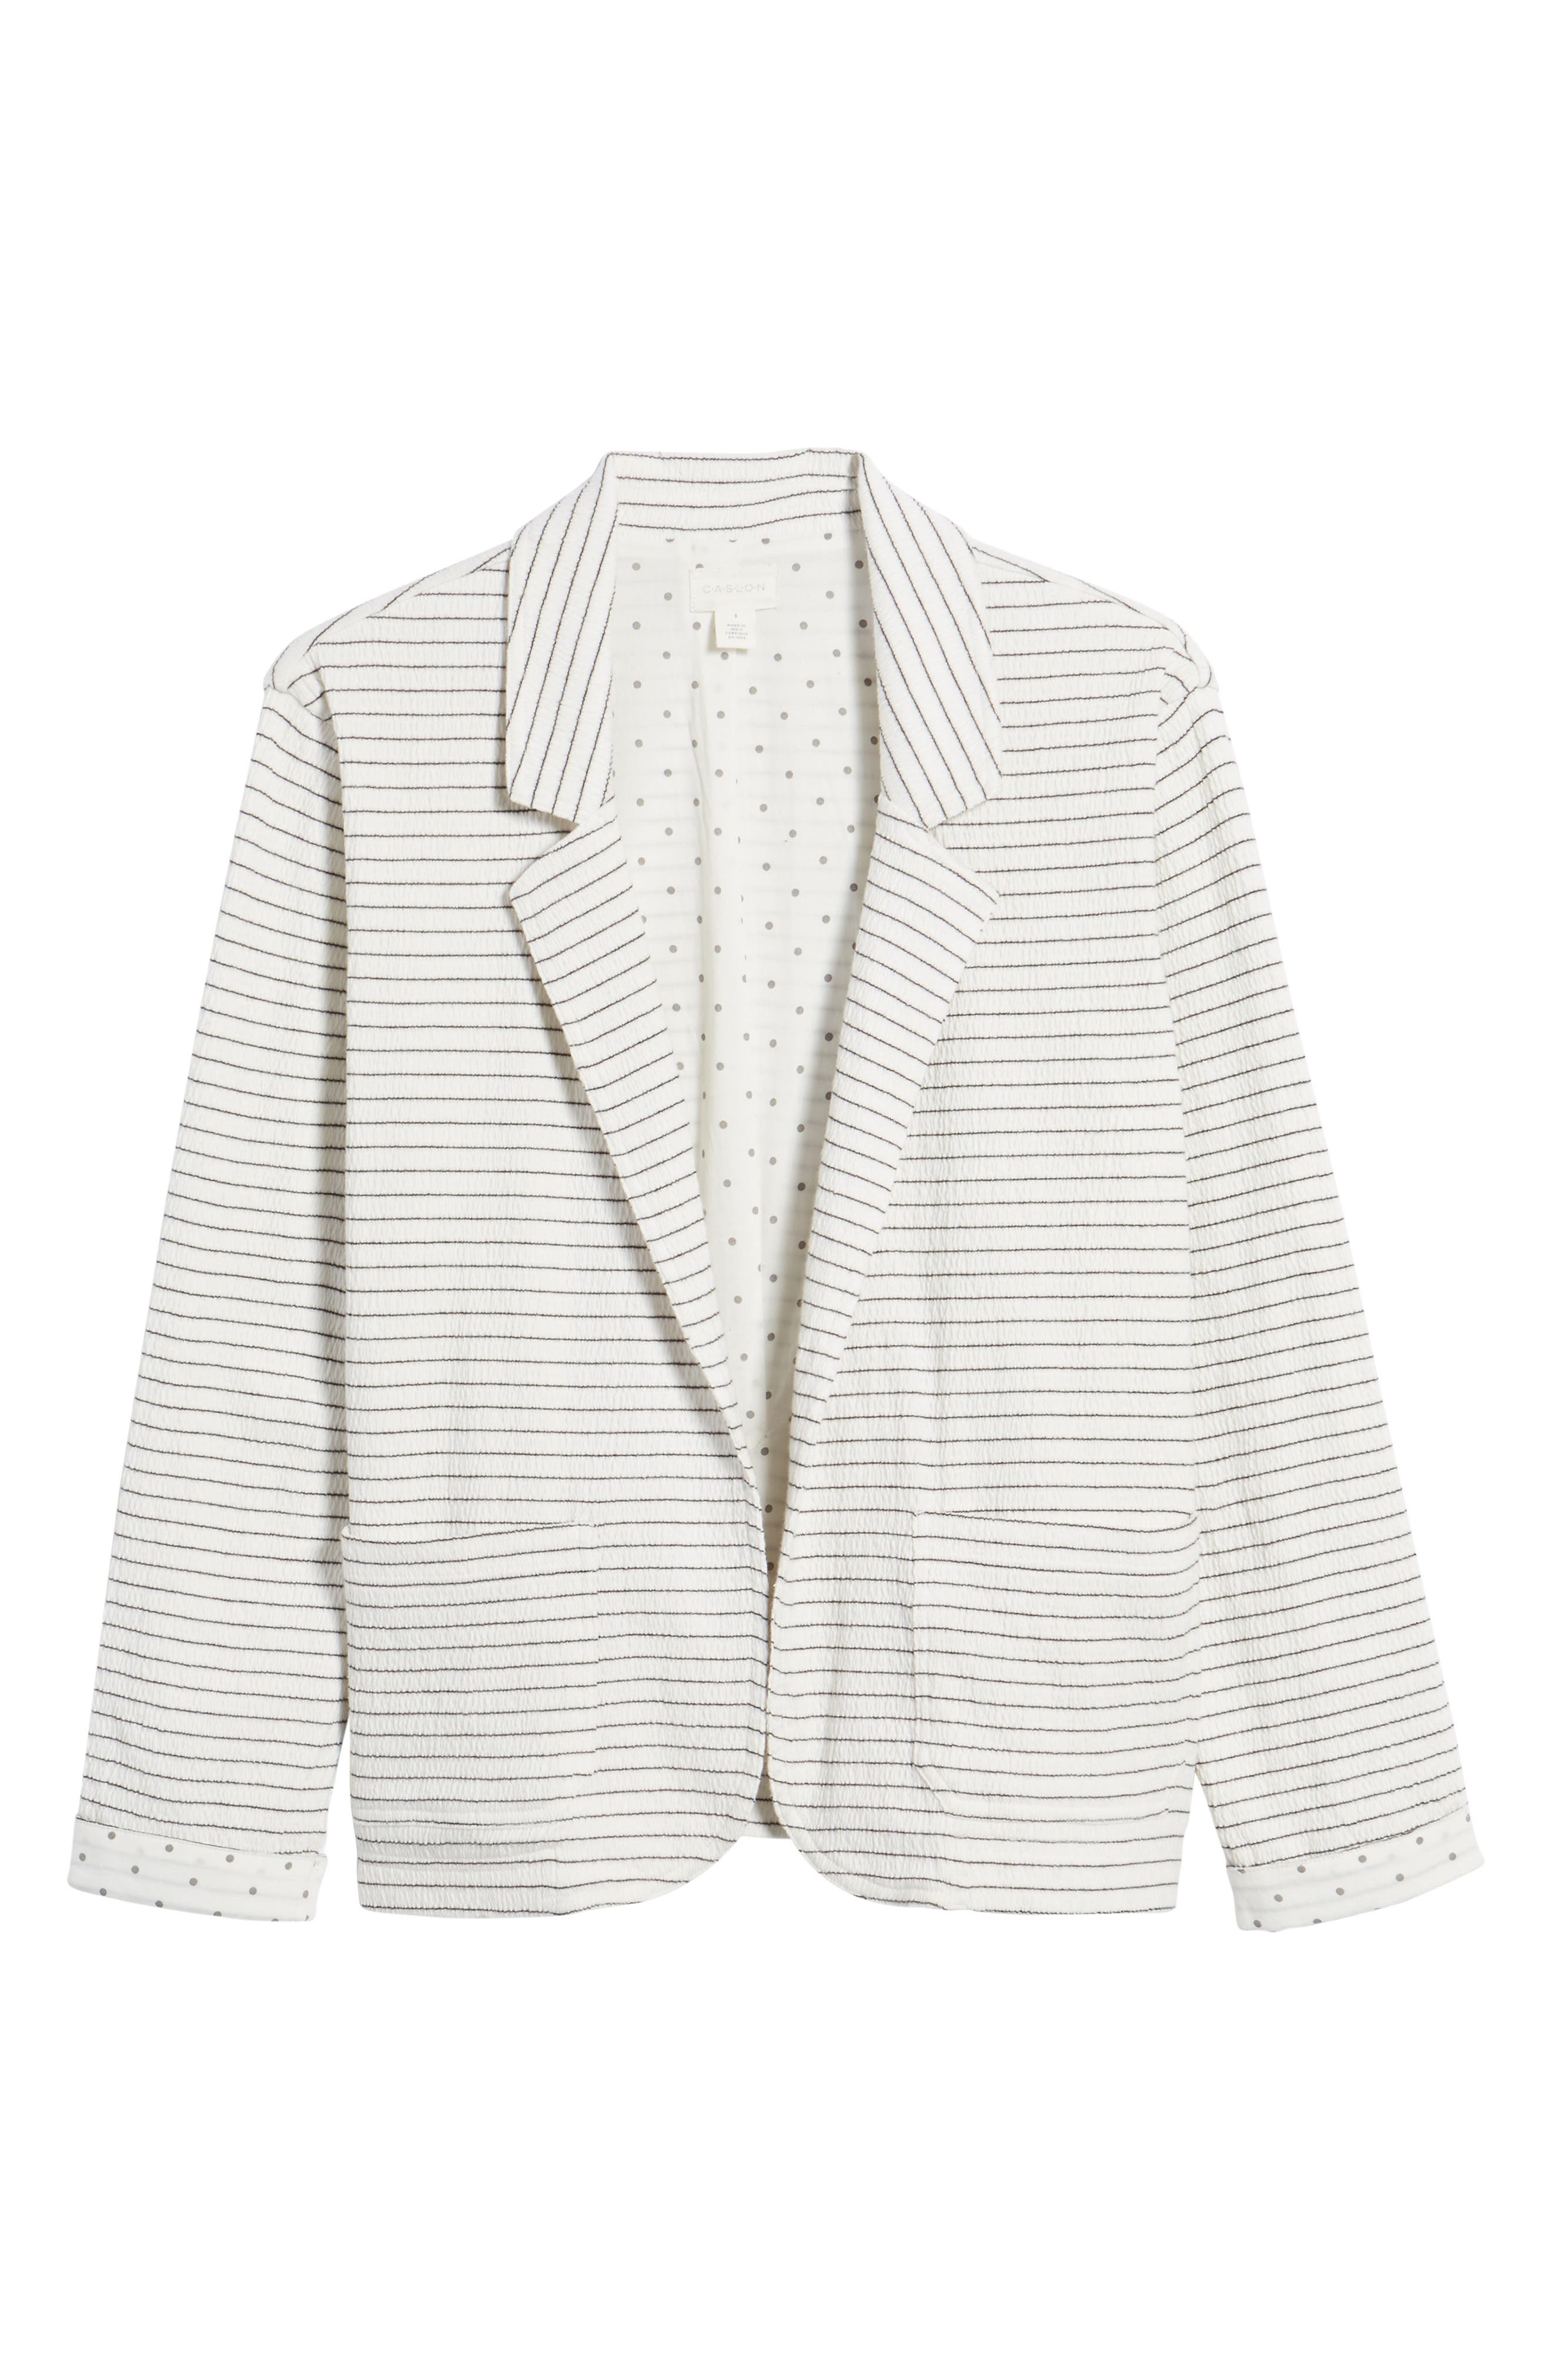 Crinkle Stretch Cotton Lined Blazer,                             Alternate thumbnail 5, color,                             900